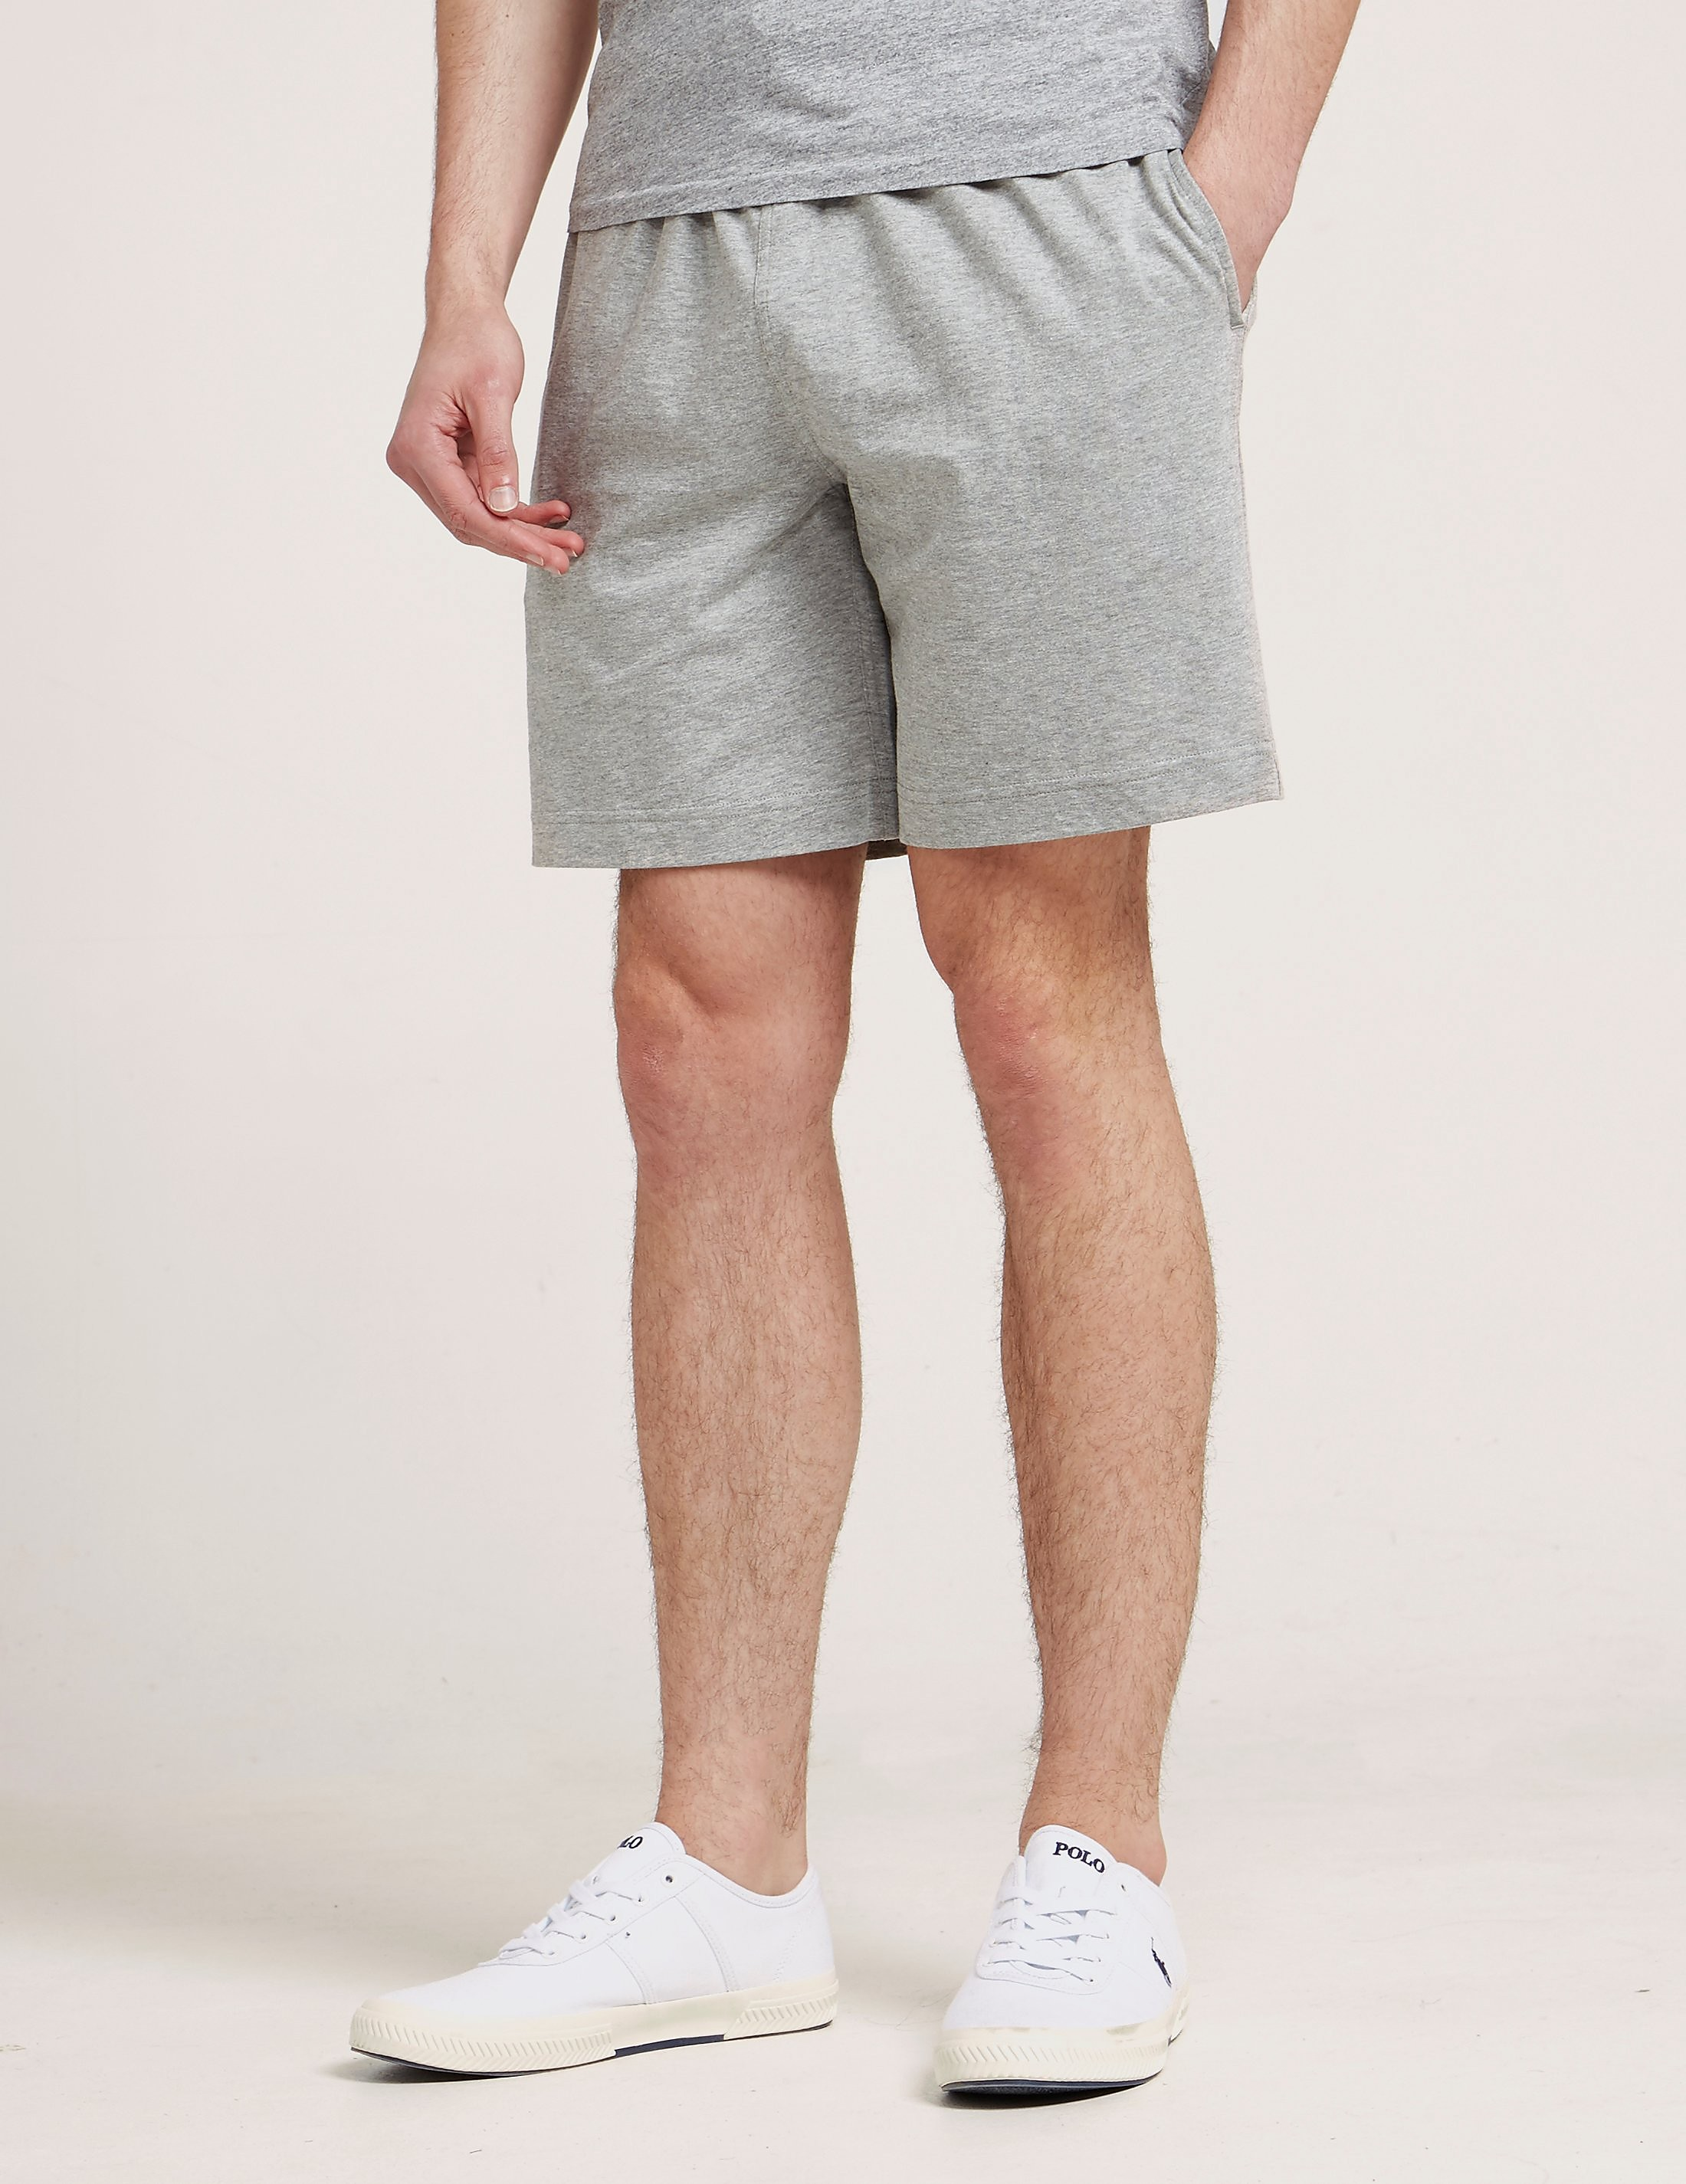 Polo Ralph Lauren Leisure Shorts